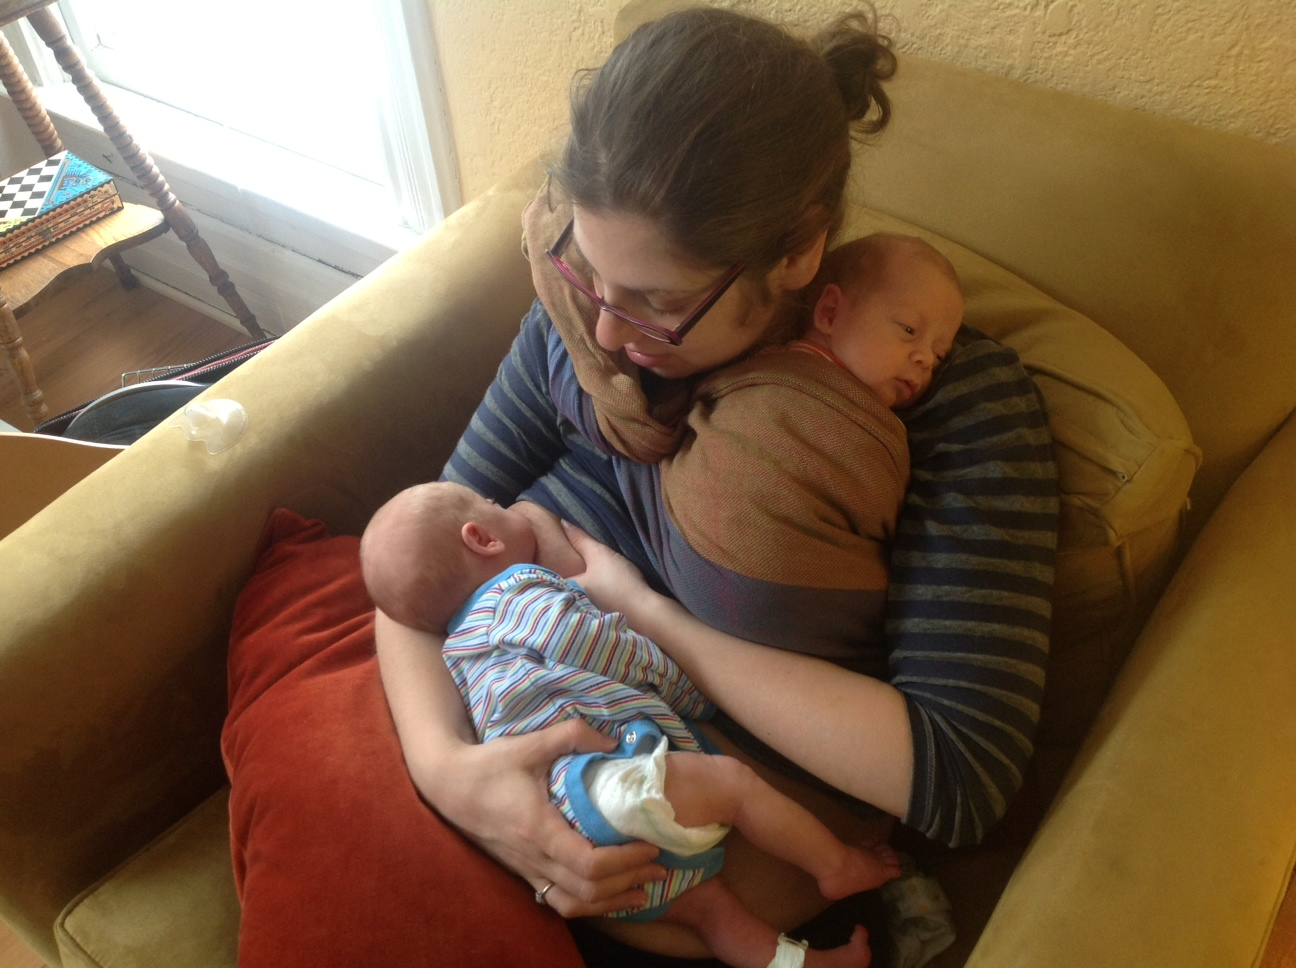 babywearing in the nicu | Closeathand Babywearing Service an Infant ...